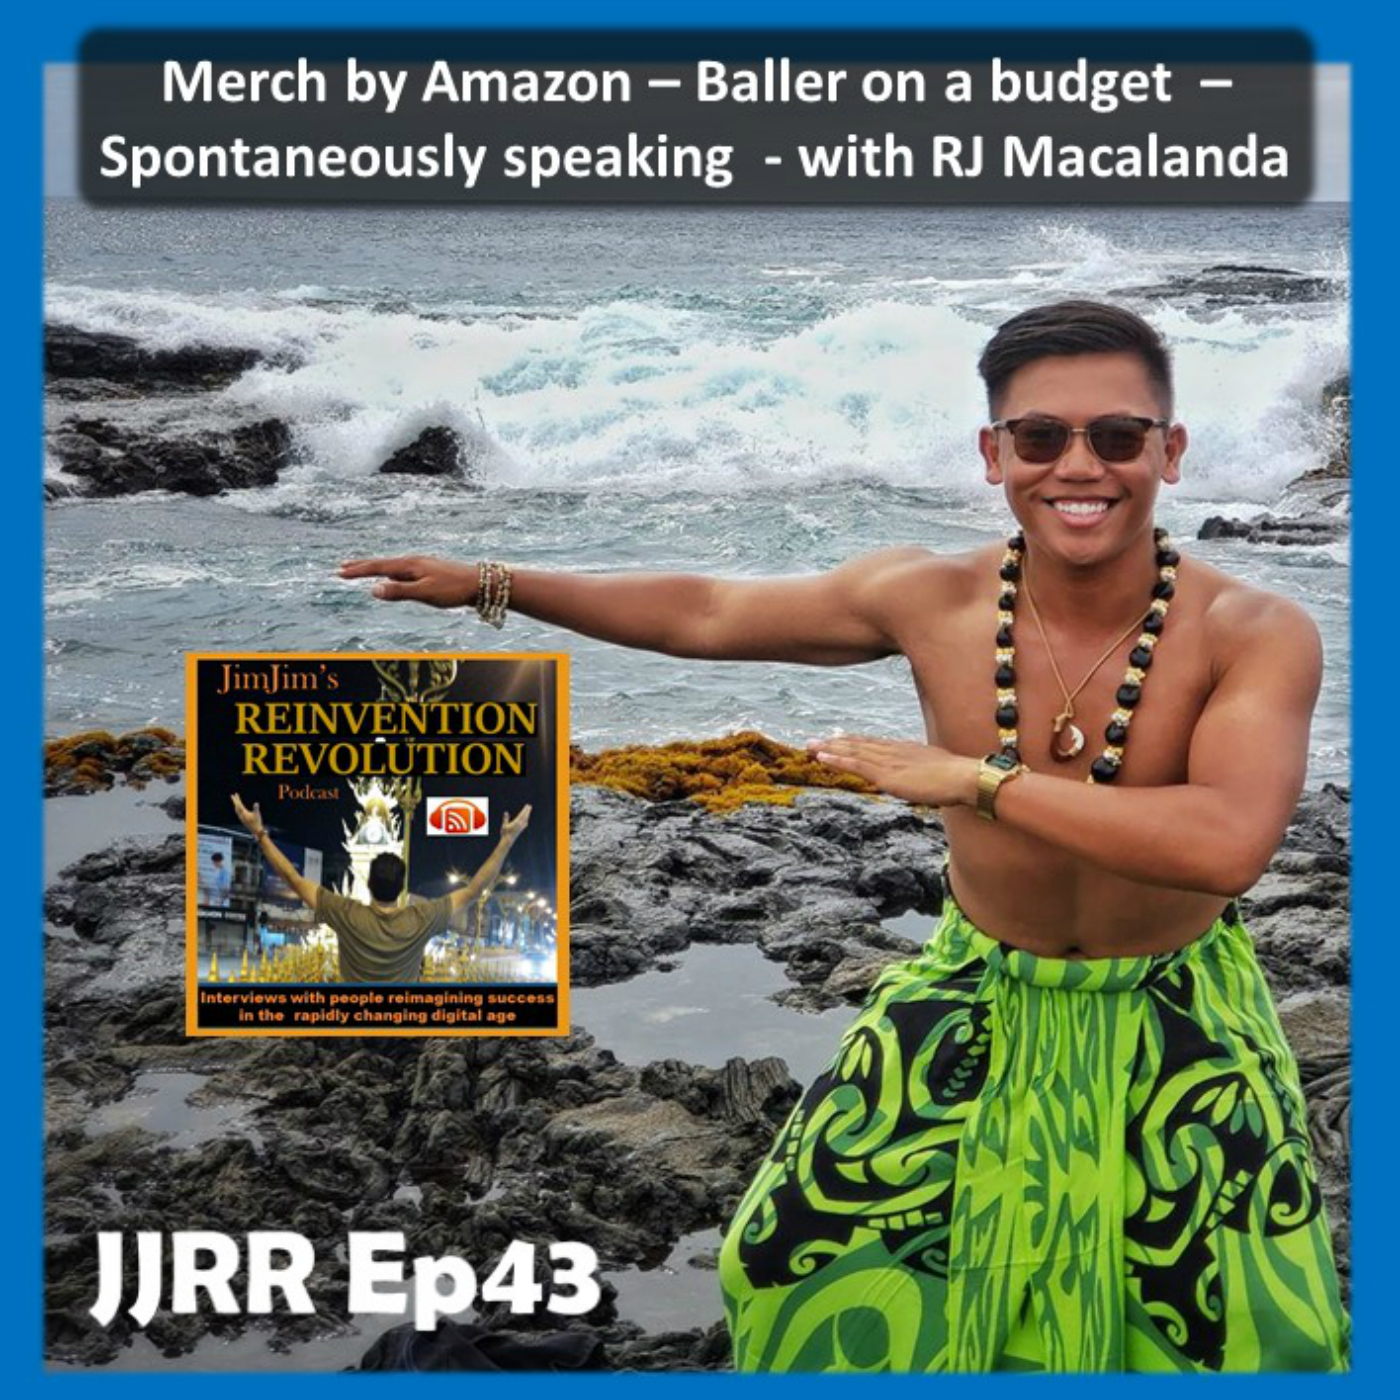 JJRR Ep43 Merch by Amazon – Baller on a budget – Spontaneously Speaking – with  RJ Macalanda